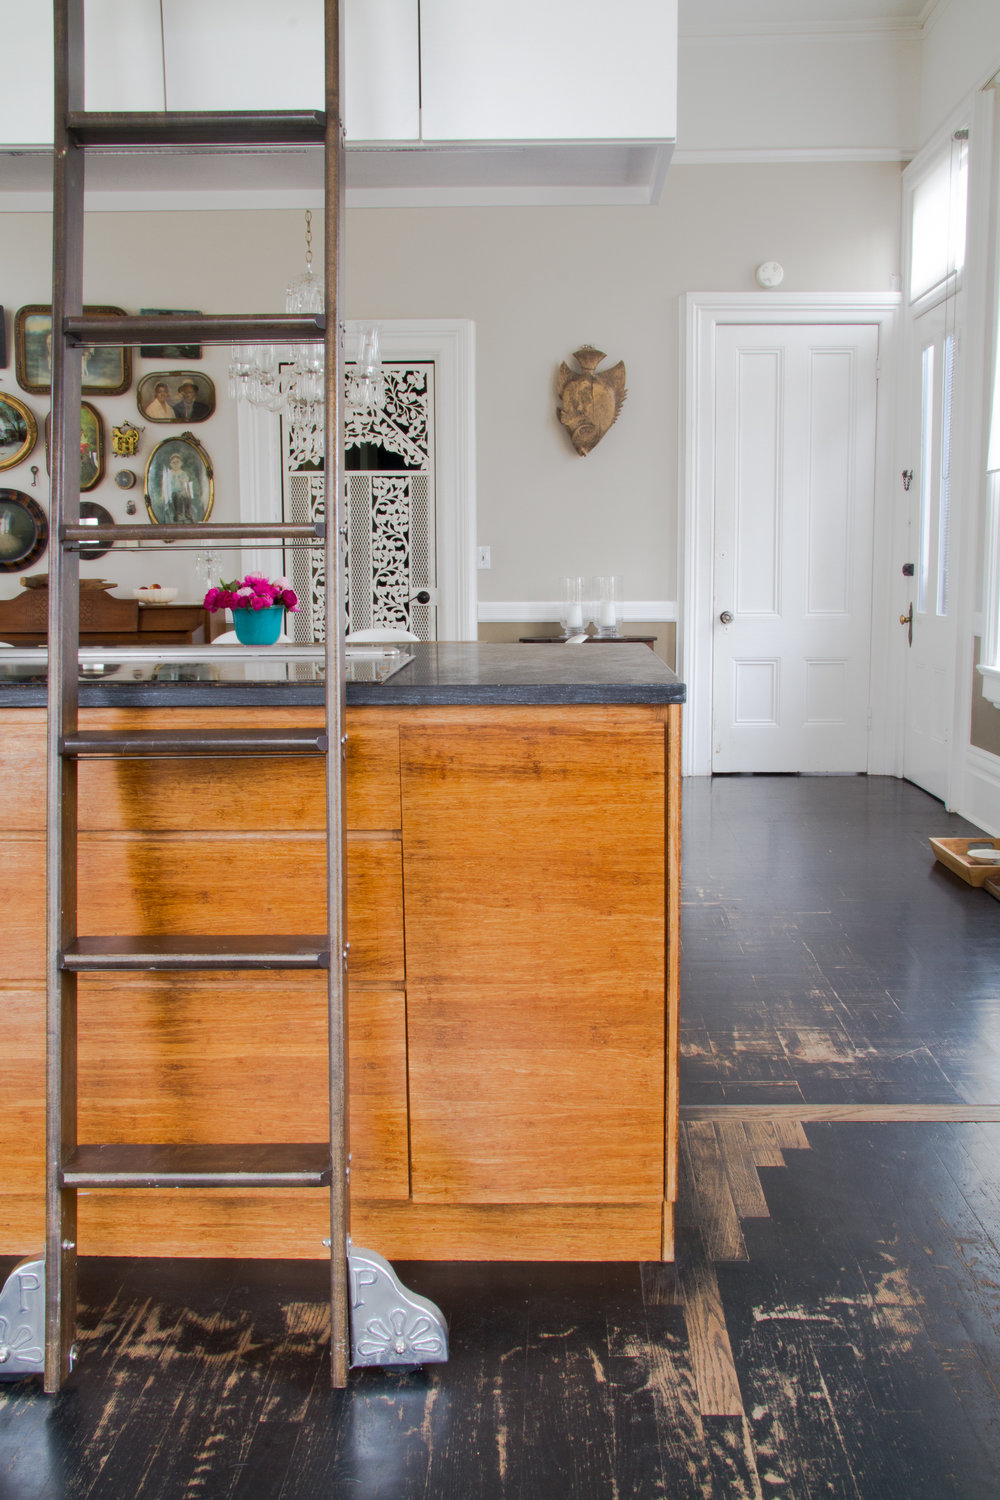 (5/21) The stained black floors reveal hints of natural oak.